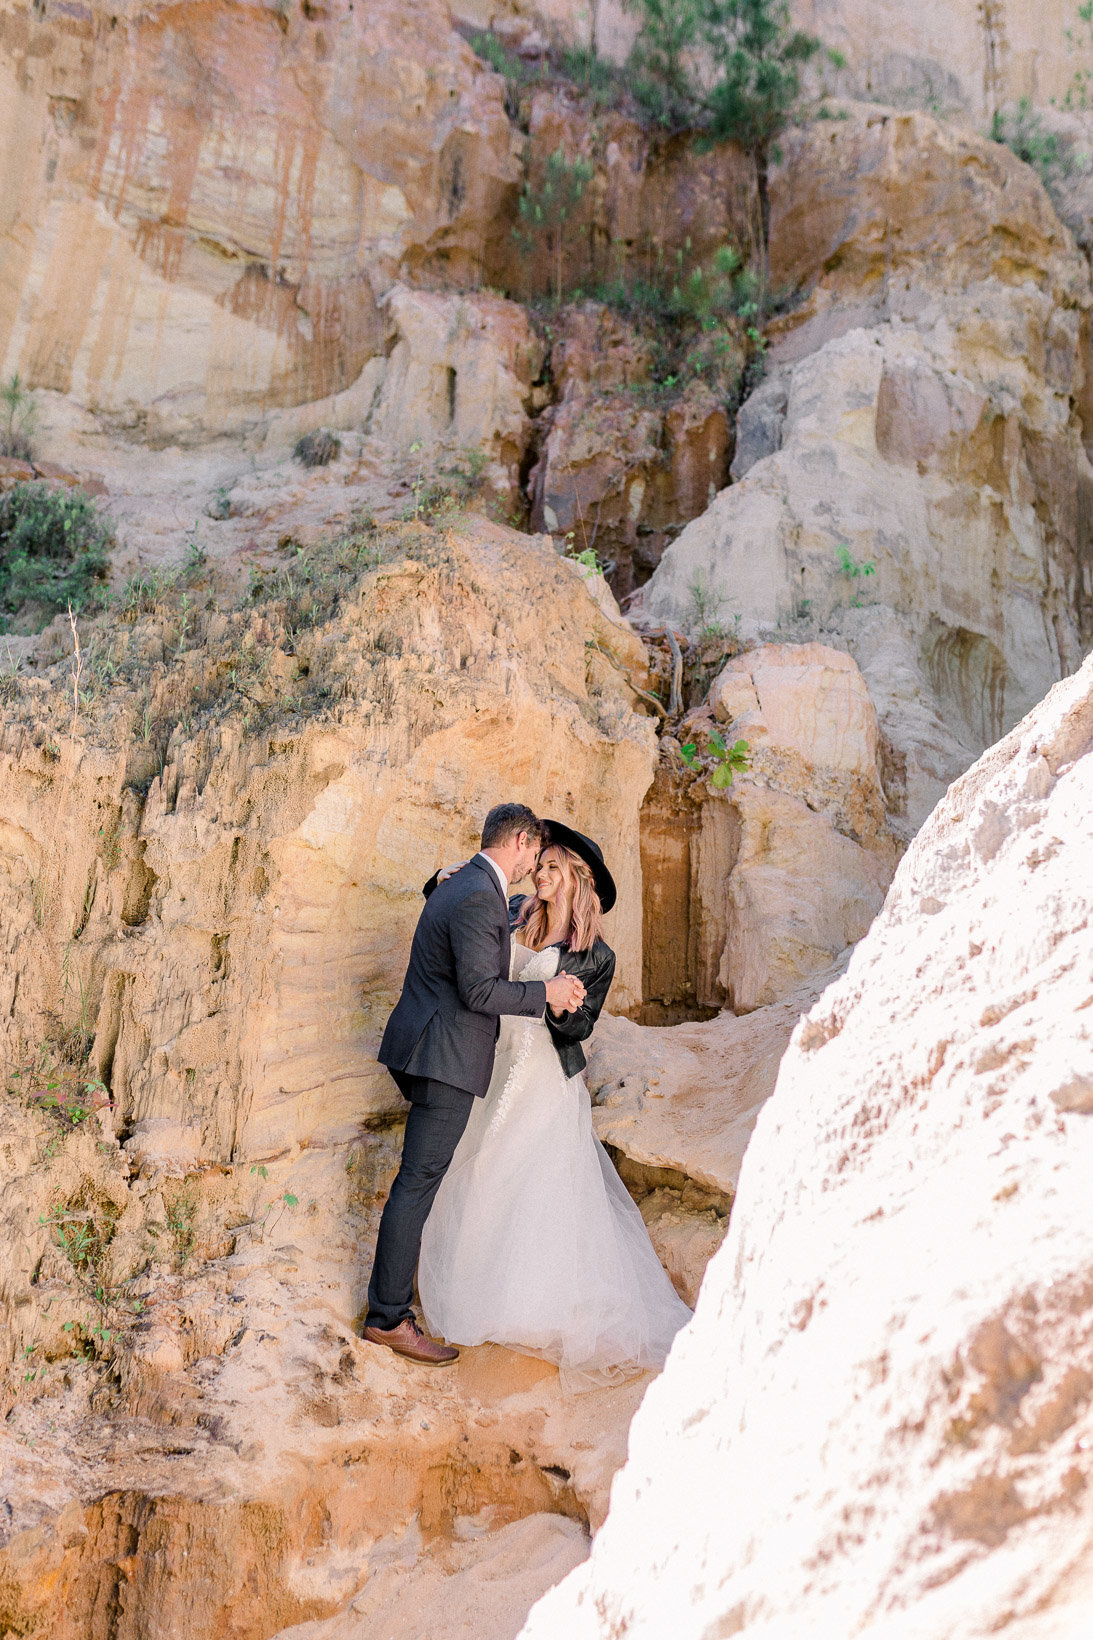 providence-canyon-wedding-elopement-adventure-hiking-georgia-arizona-6